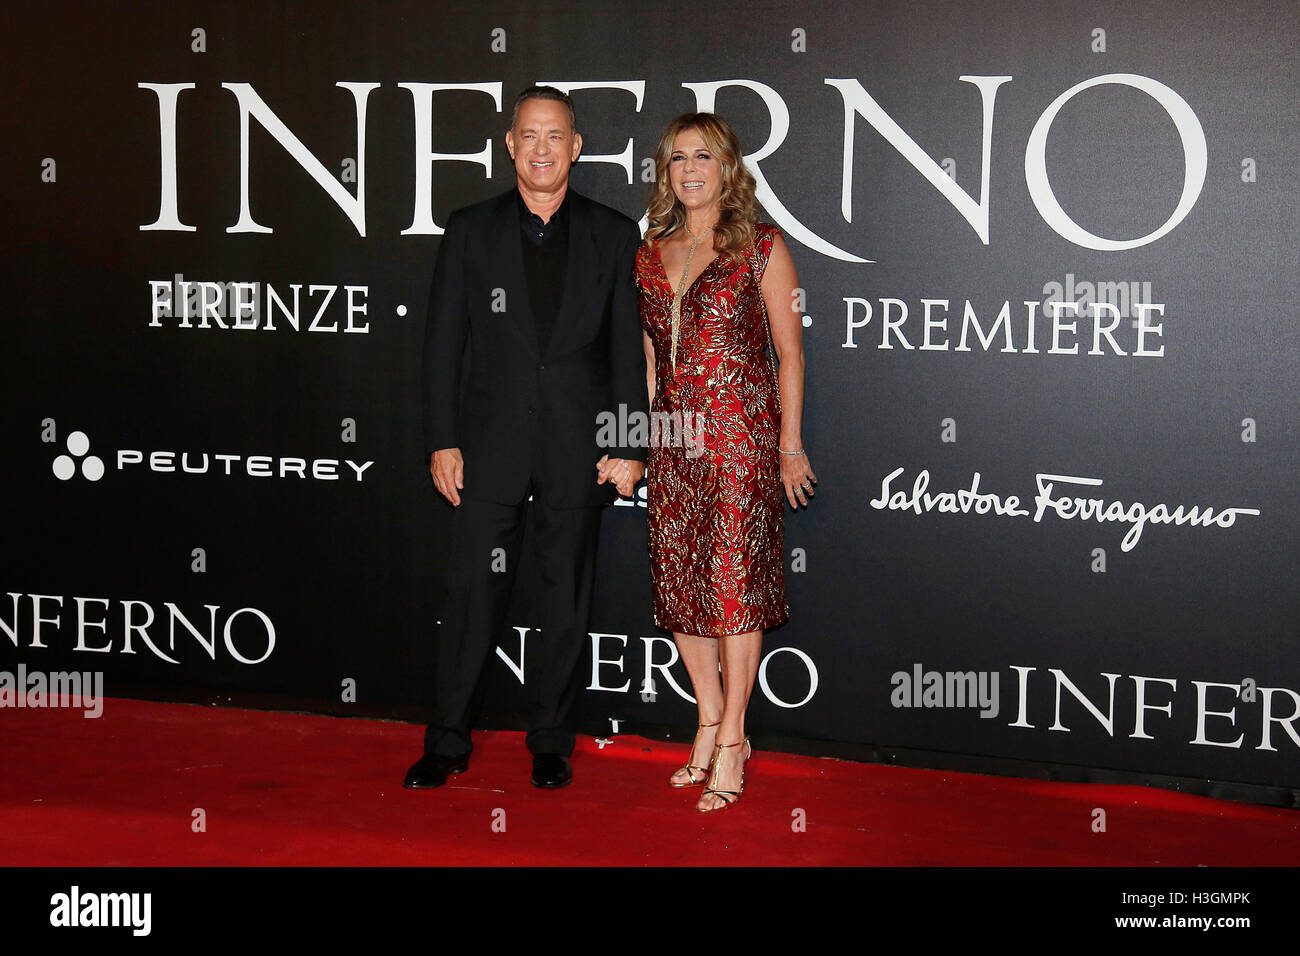 Florence, Italy. 8th October, 2016. Tom Hanks with his wife Rita Wilkson Florence 8th October 2016. 'Inferno' - Stock Image